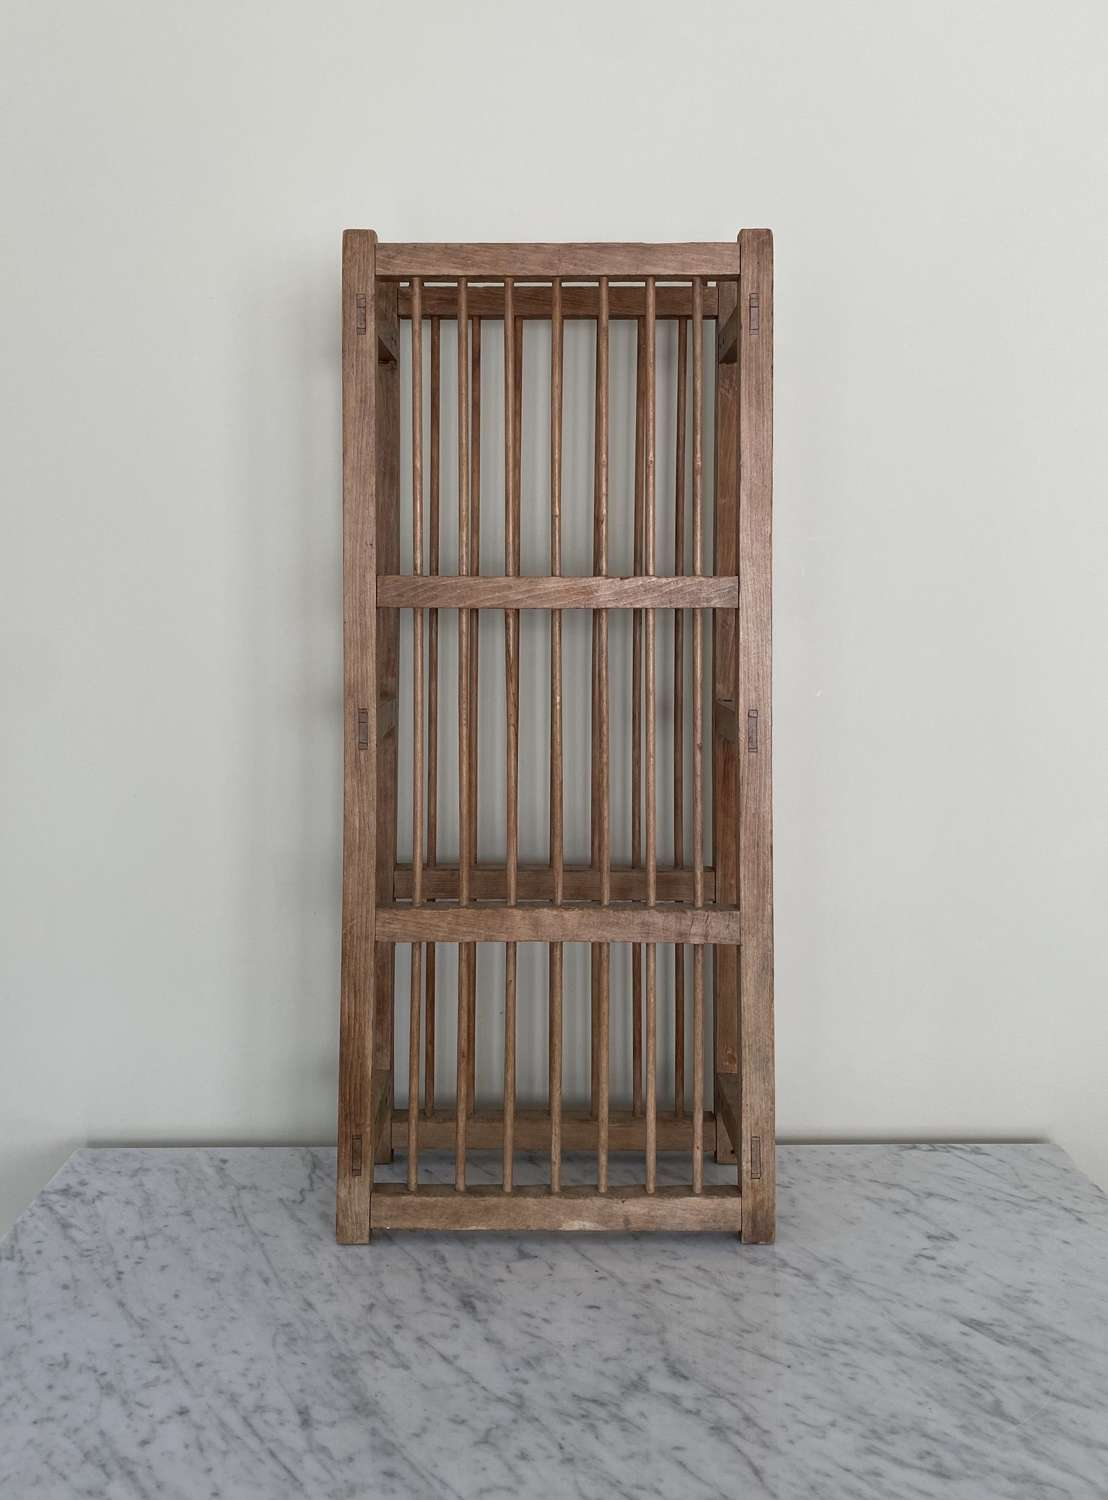 Antique Early 20th Century Three Tier Plate Rack